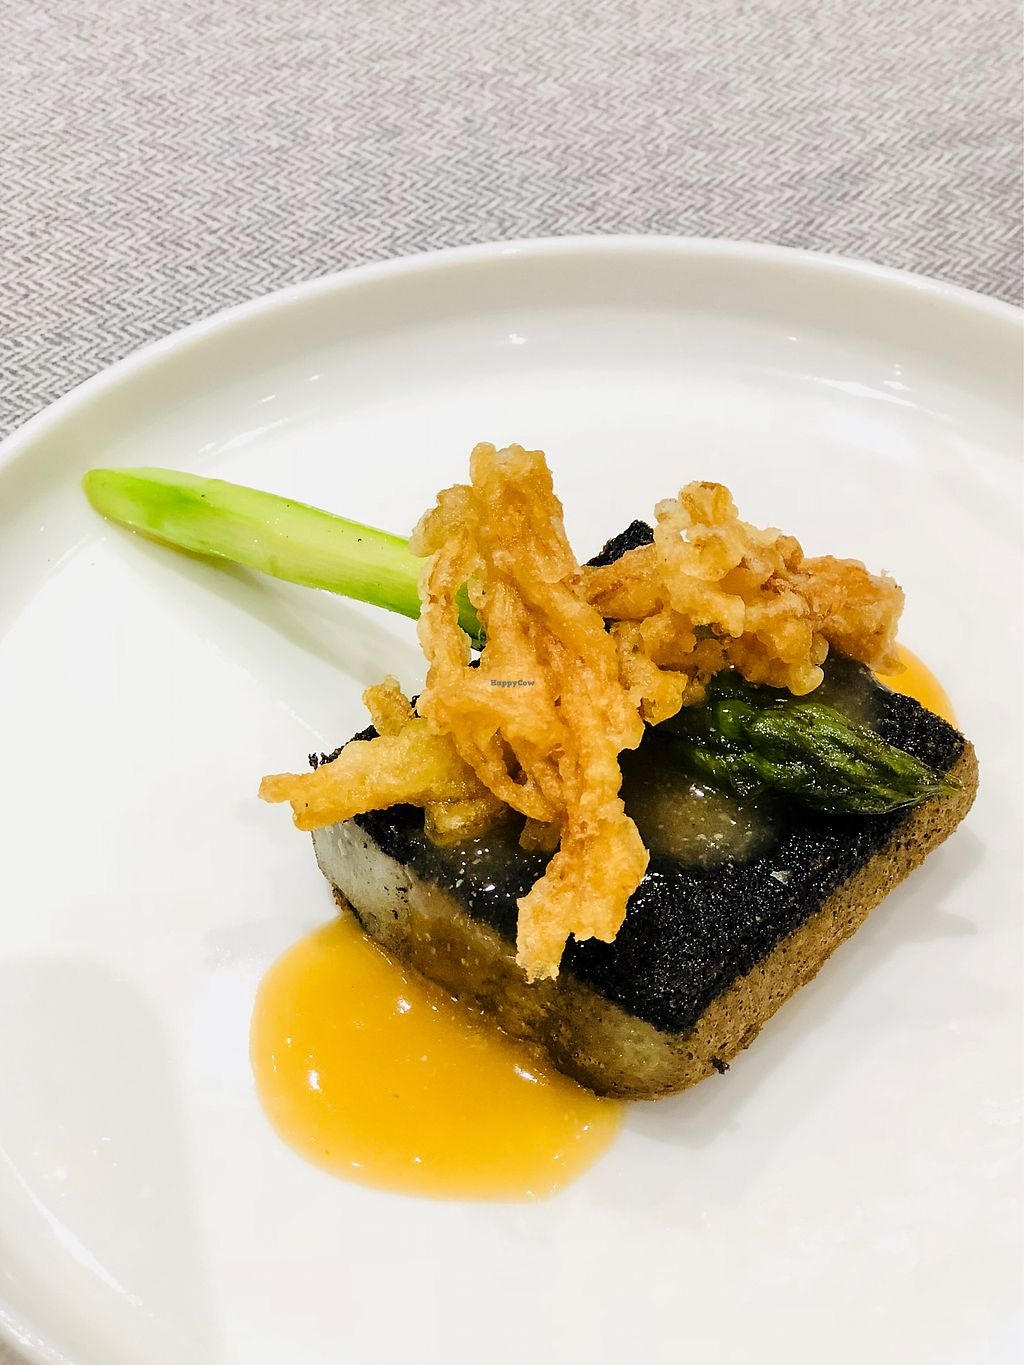 """Photo of Elemen - HarbourFront   by <a href=""""/members/profile/CherylQuincy"""">CherylQuincy</a> <br/>Charcoal Beancurd with Golden Oyster Mushroom <br/> January 20, 2018  - <a href='/contact/abuse/image/107366/348637'>Report</a>"""